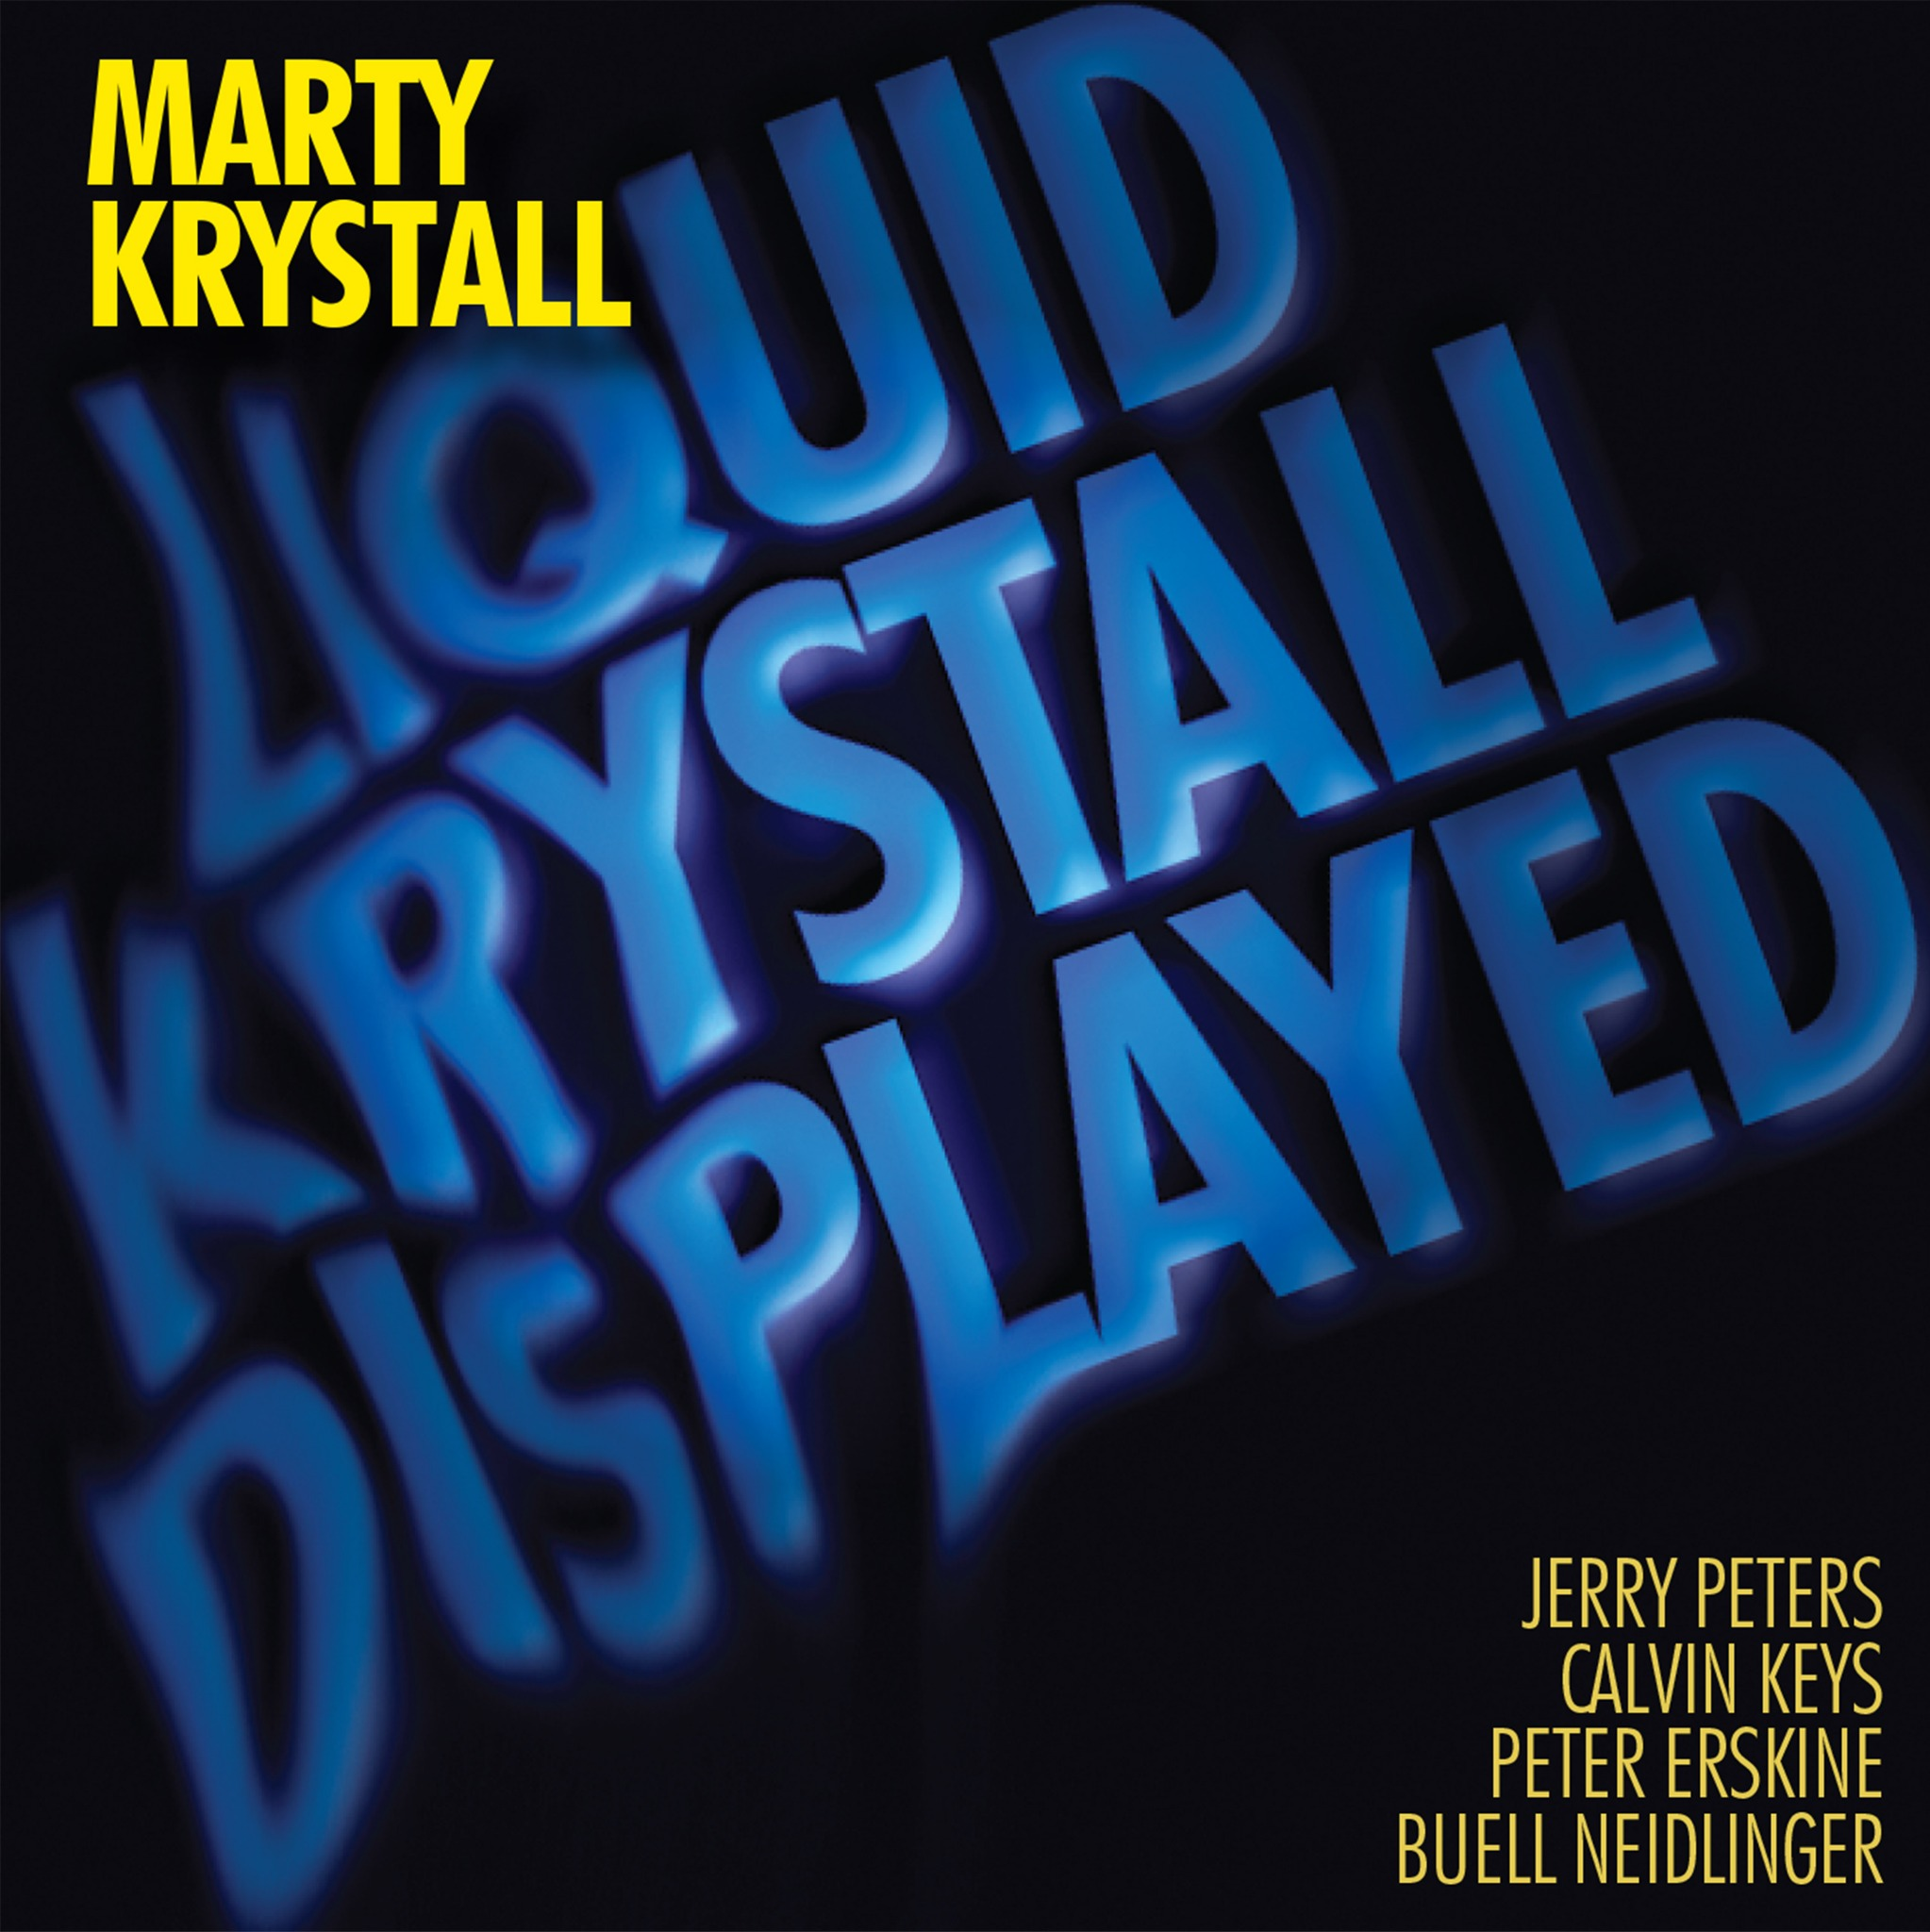 Marty Krystall - Liquid Krystall Displayed (K2B2 4269) CD